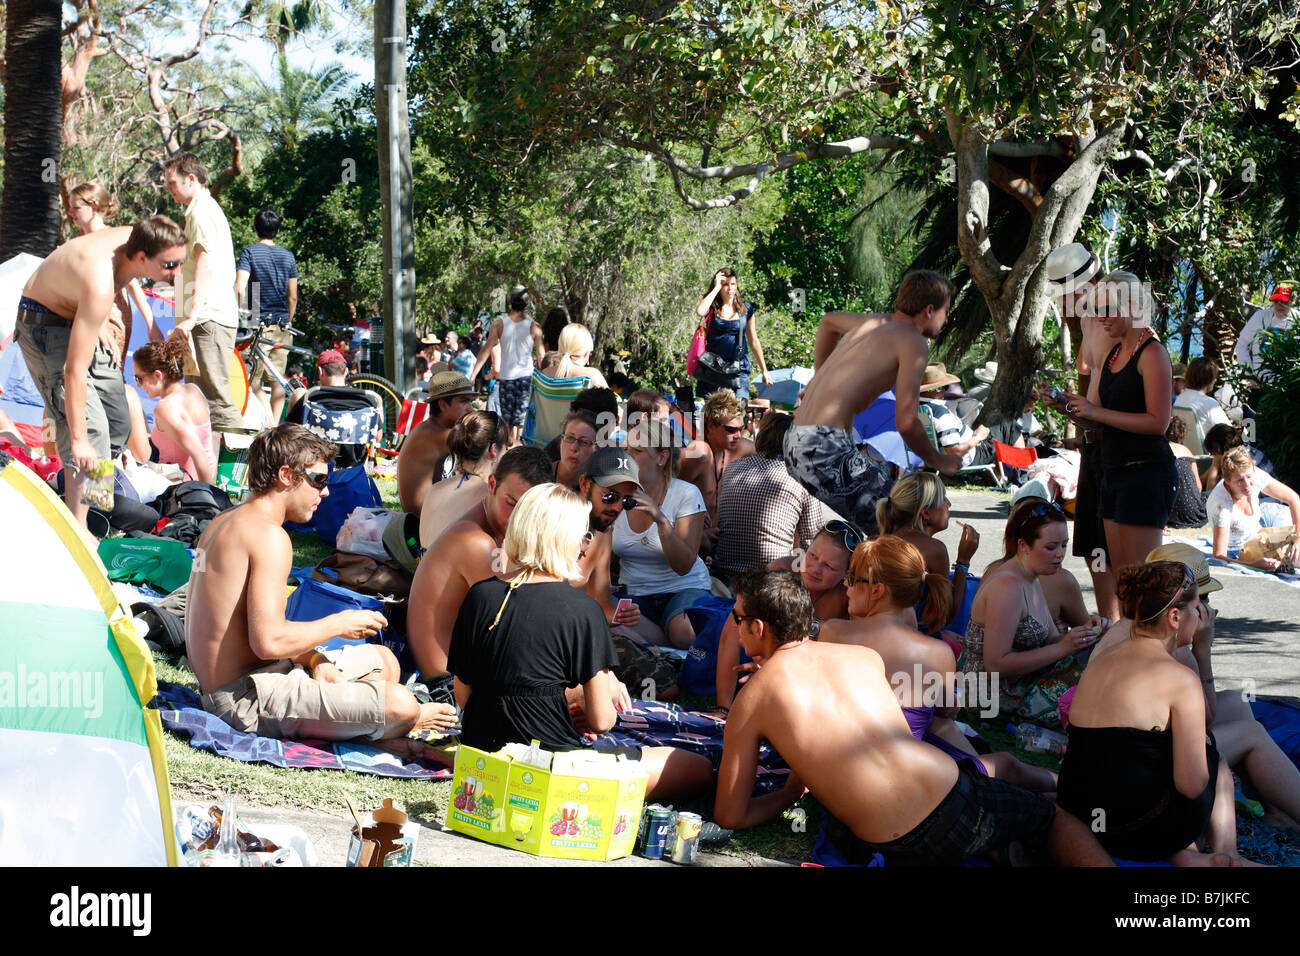 Part of the New Years Eve Crowd on the foreshores of Sydney Harbour - Stock Image